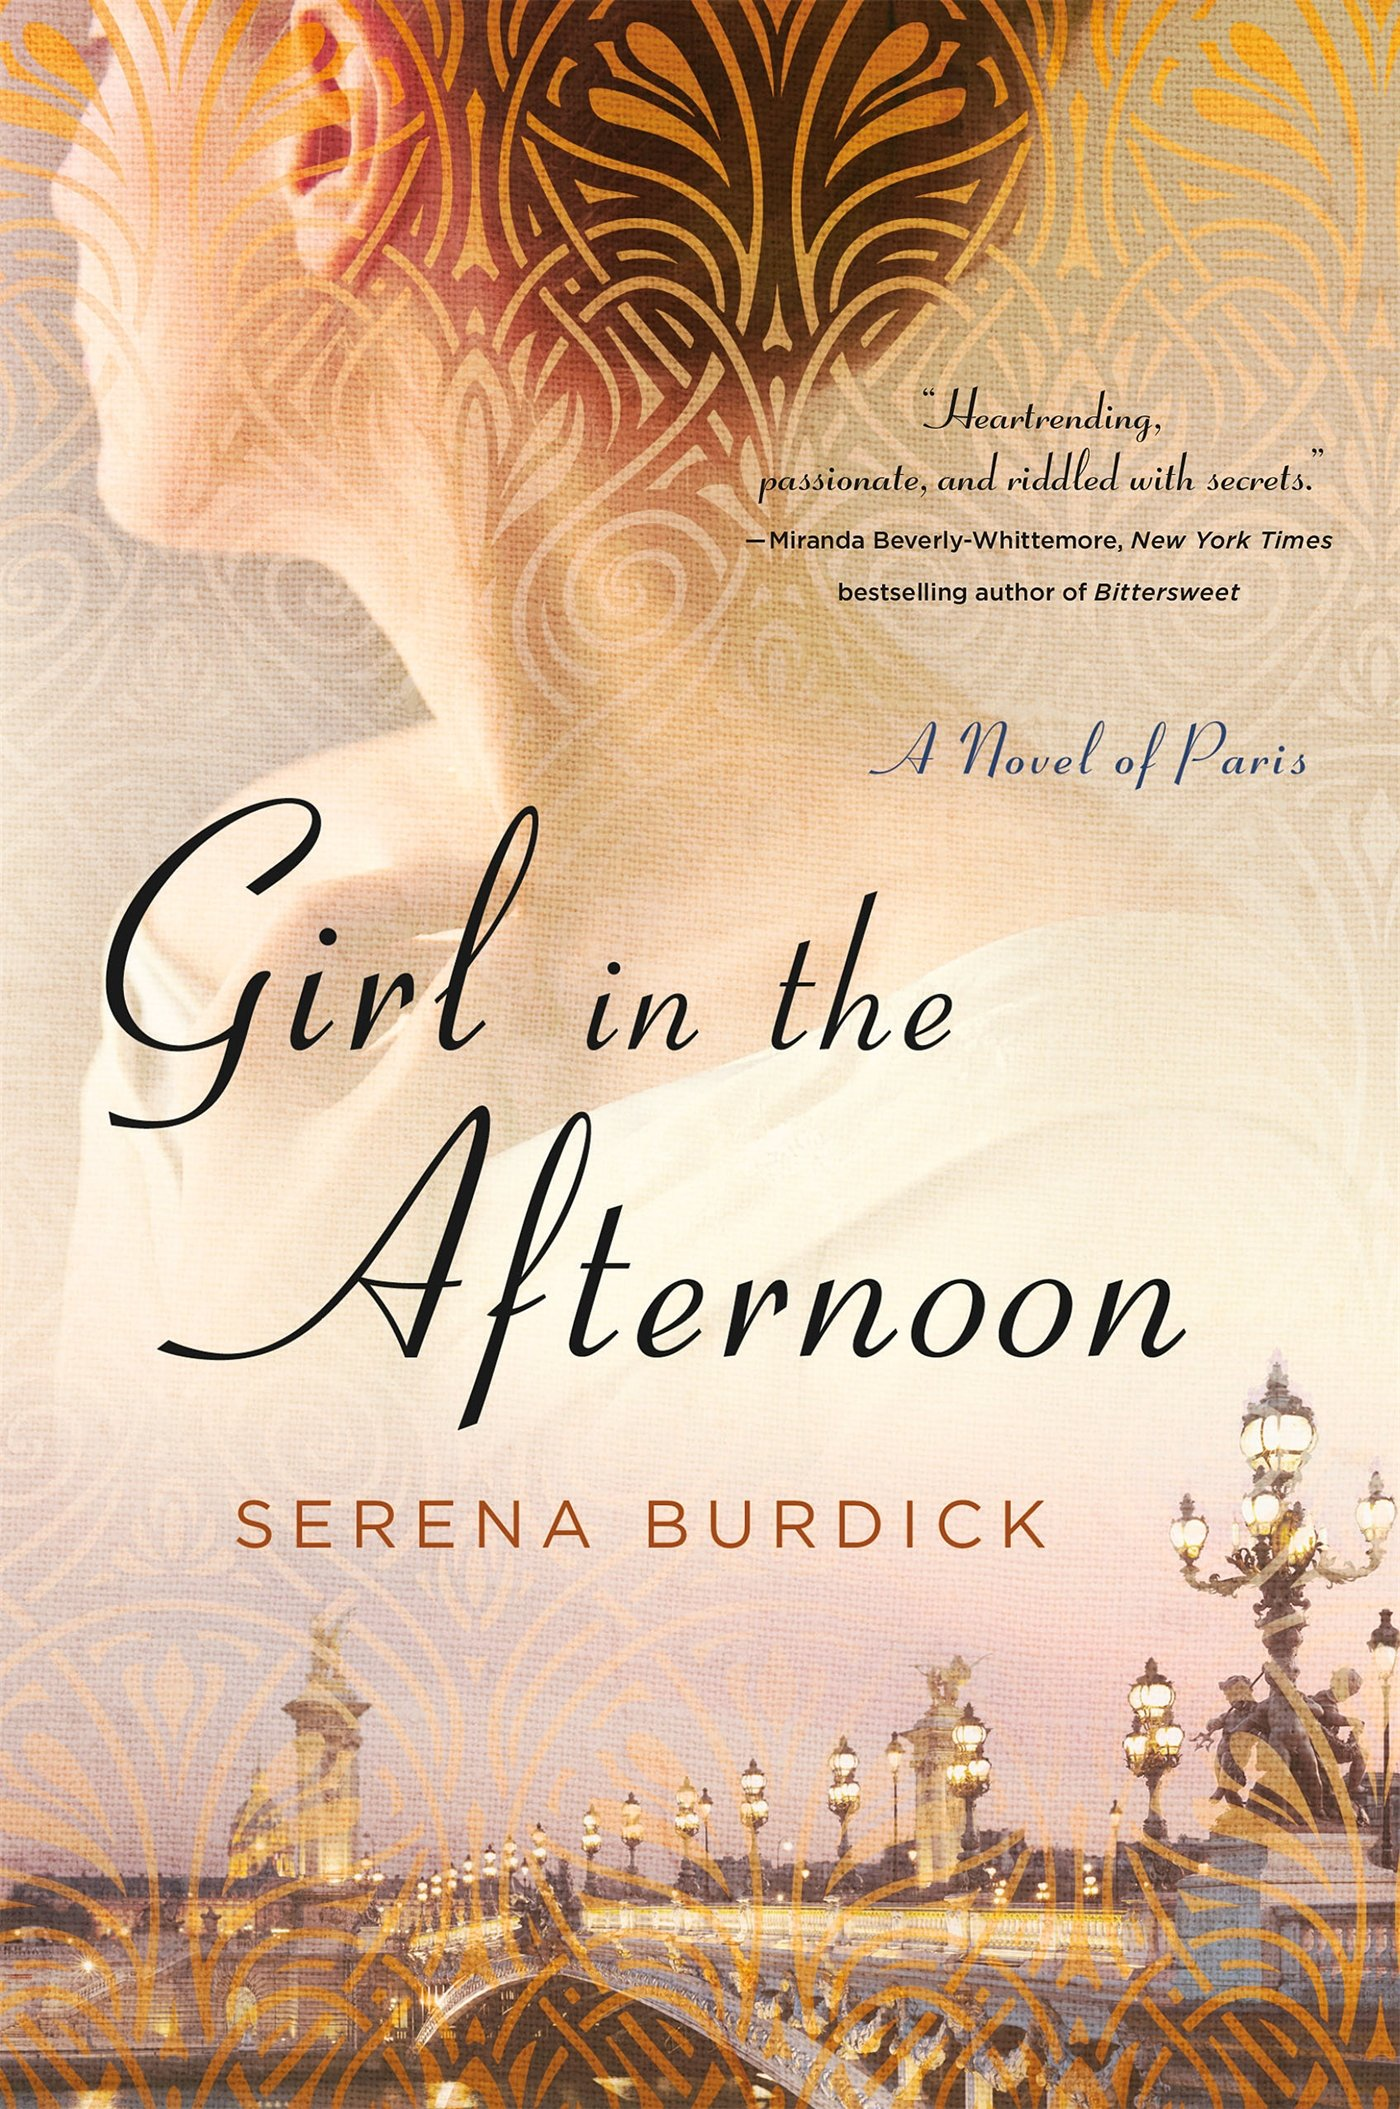 in the afternoon a novel of paris serena burdick